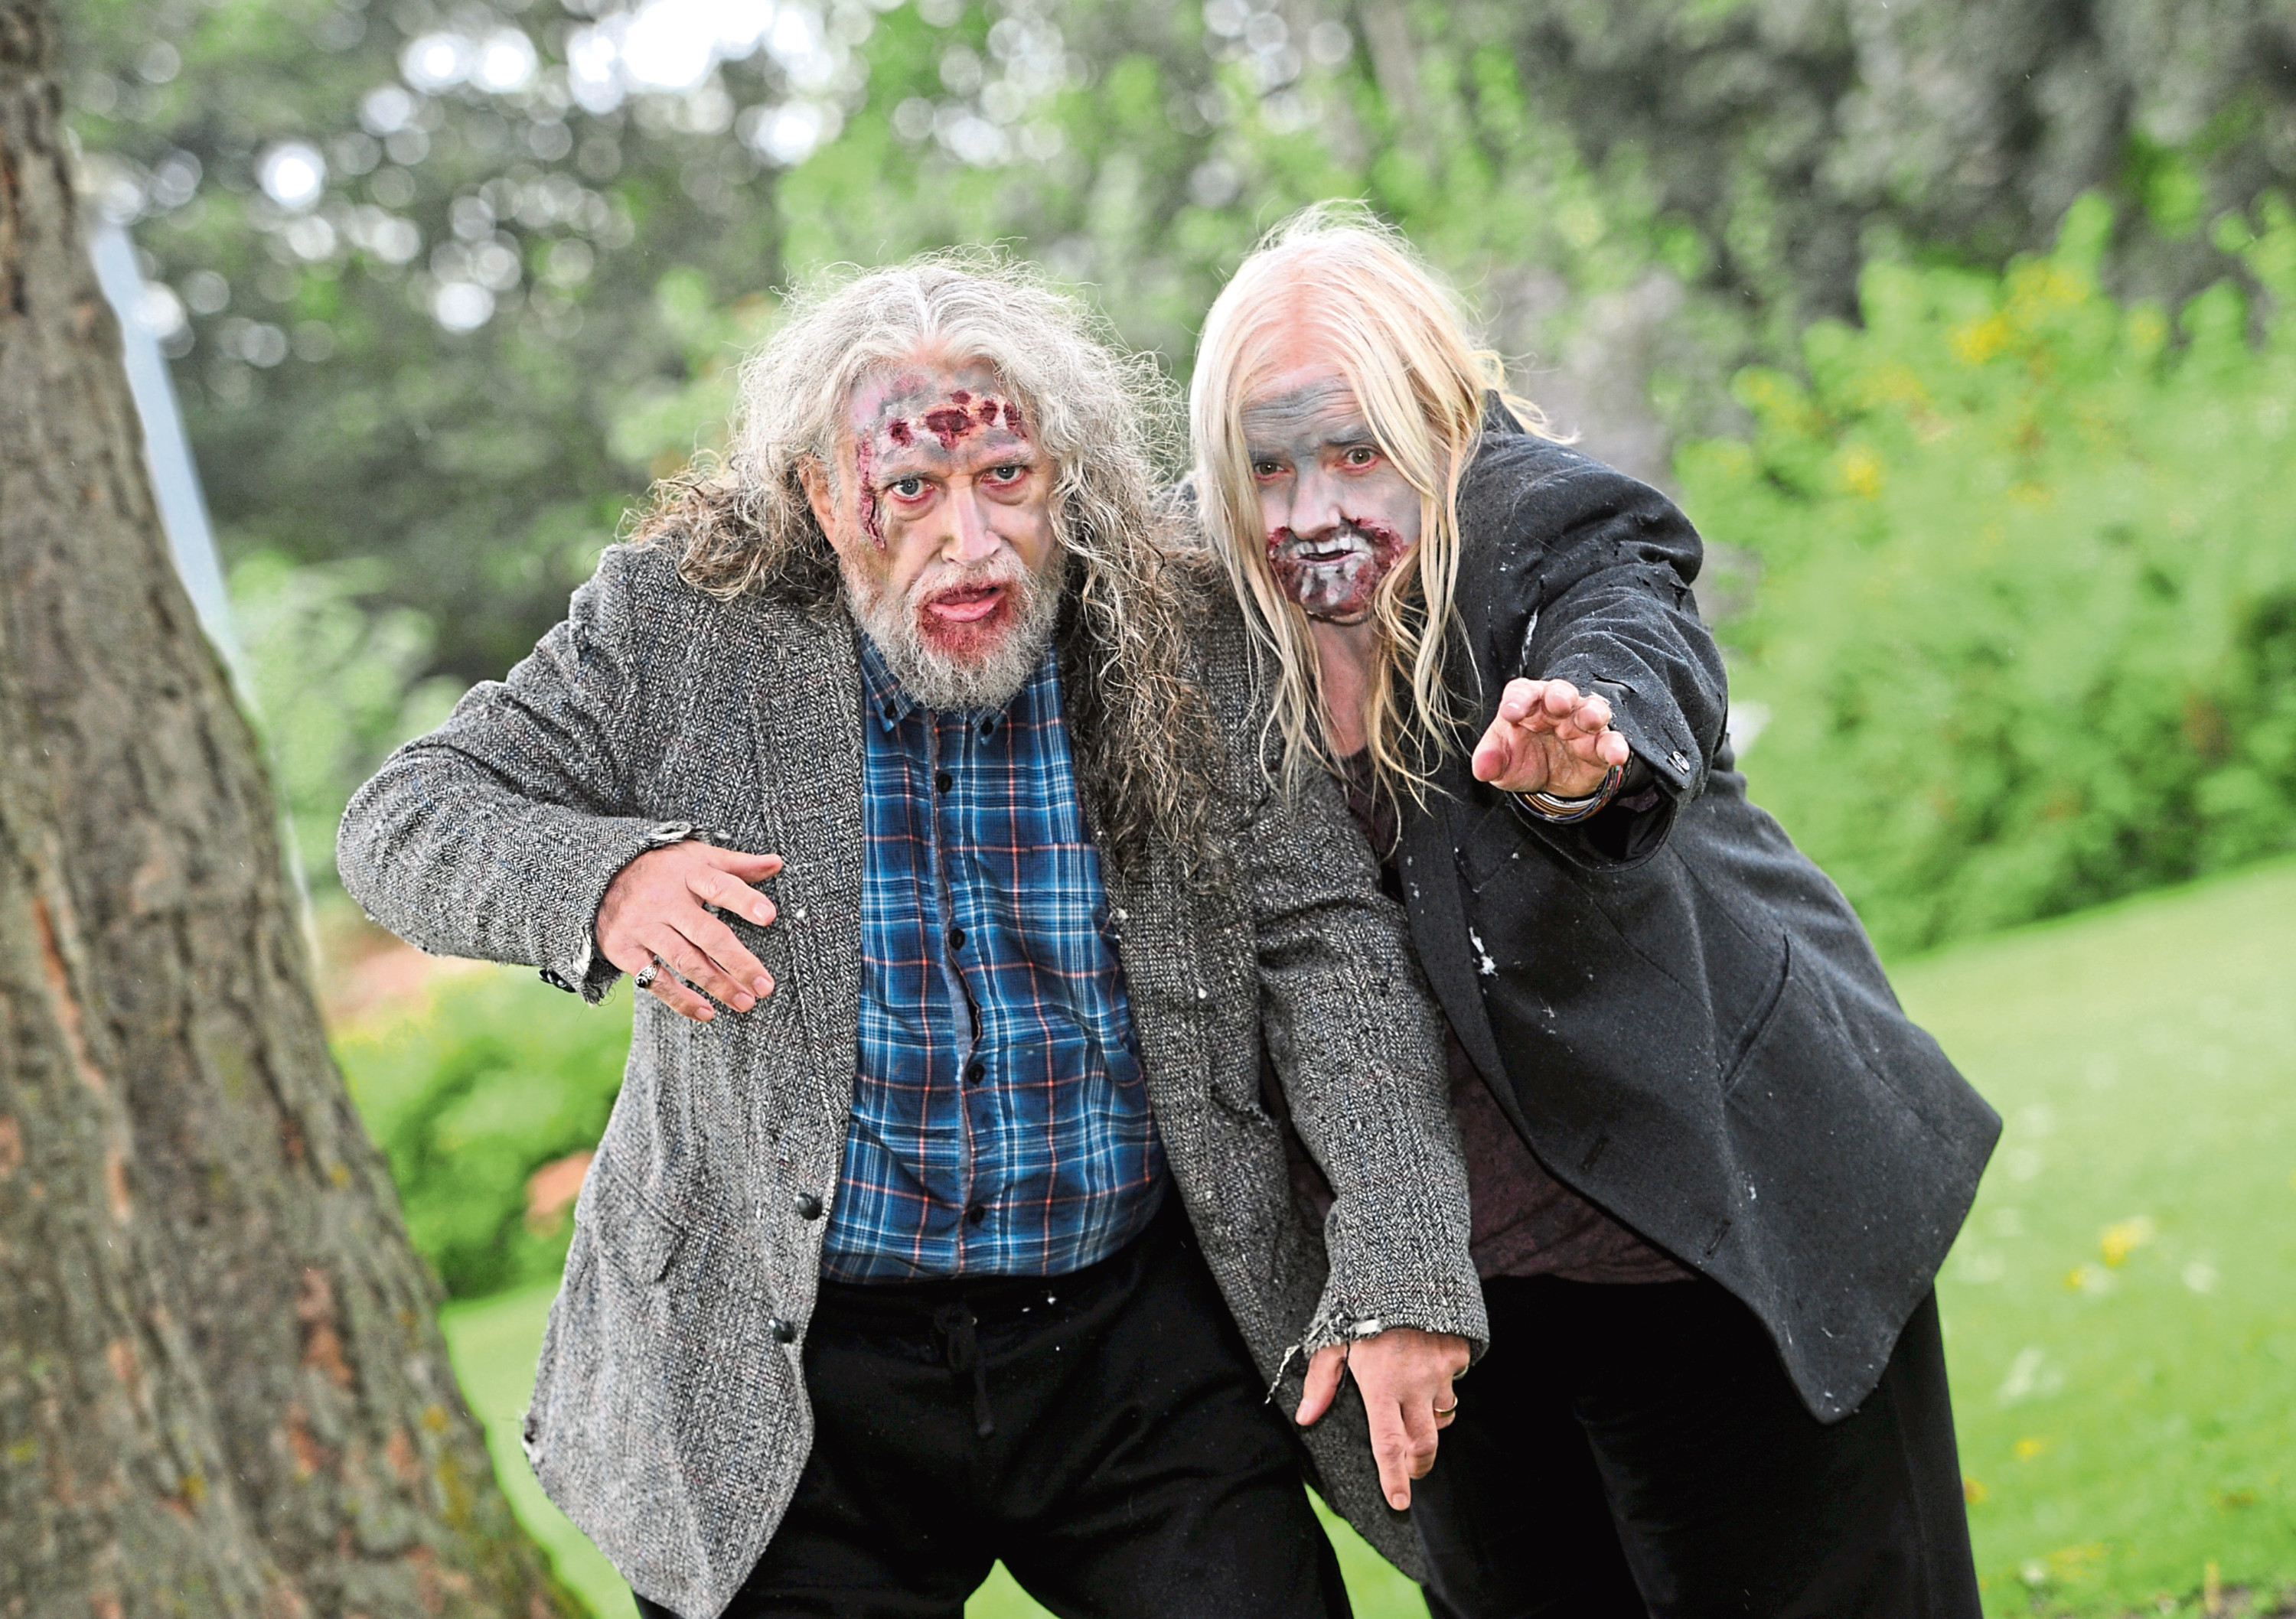 Chris and Annie Begg from 'Quids In' theatre company are looking for actors to take part in the Zombie Apocalypse